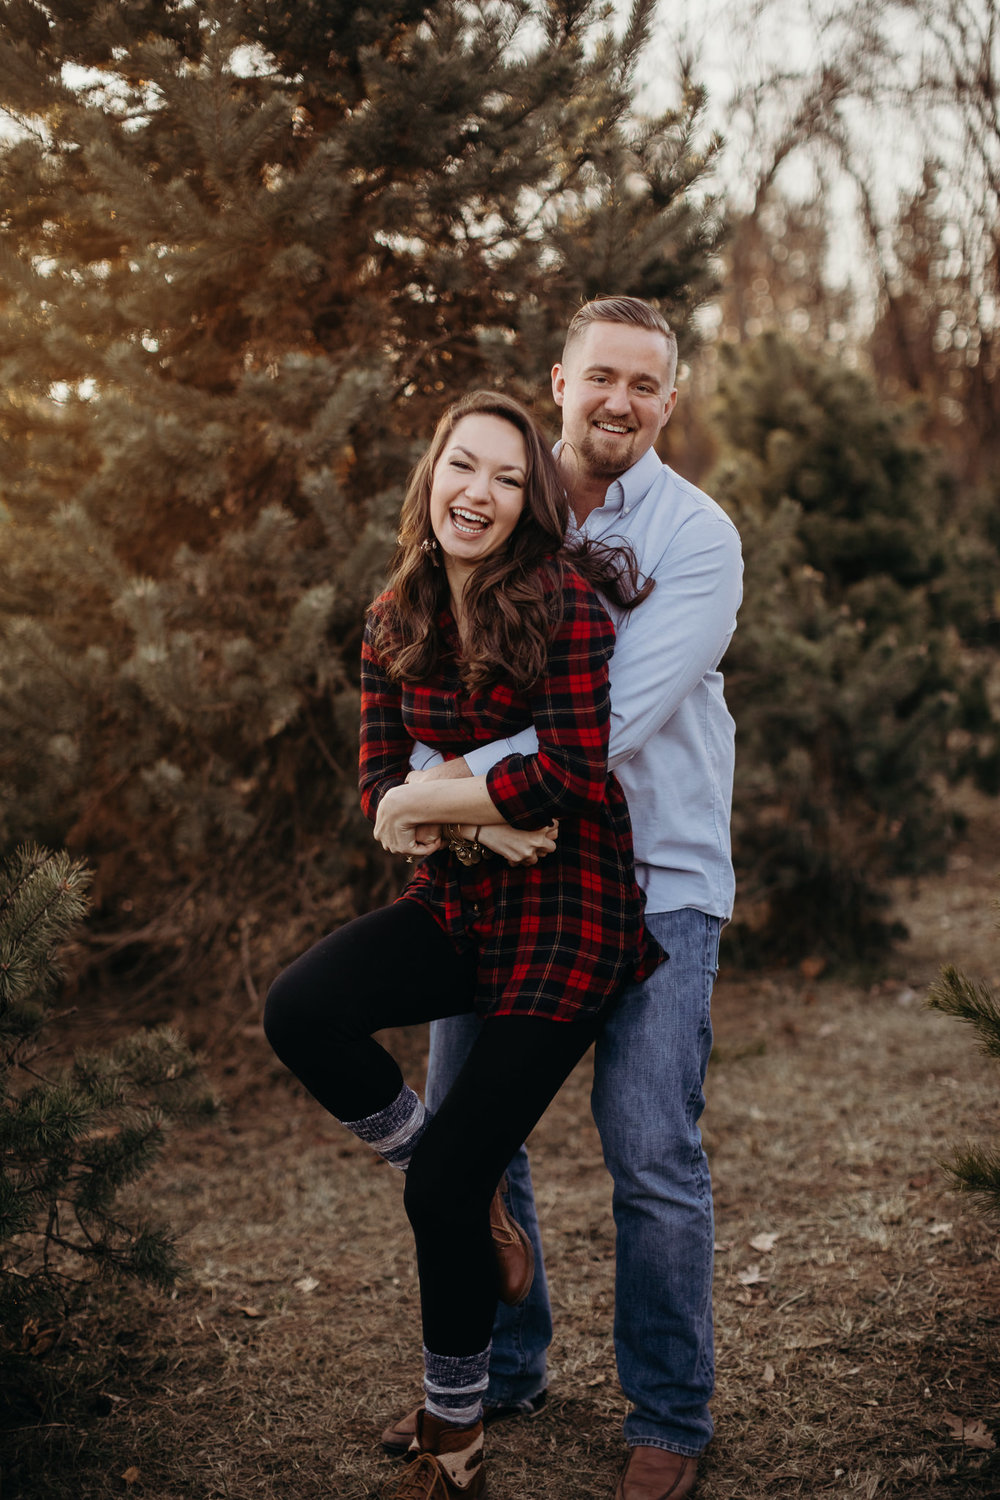 Engagement - Tree picking - Wedding Photographer - Virginia - Best - Pat Cori Photography-26.jpg